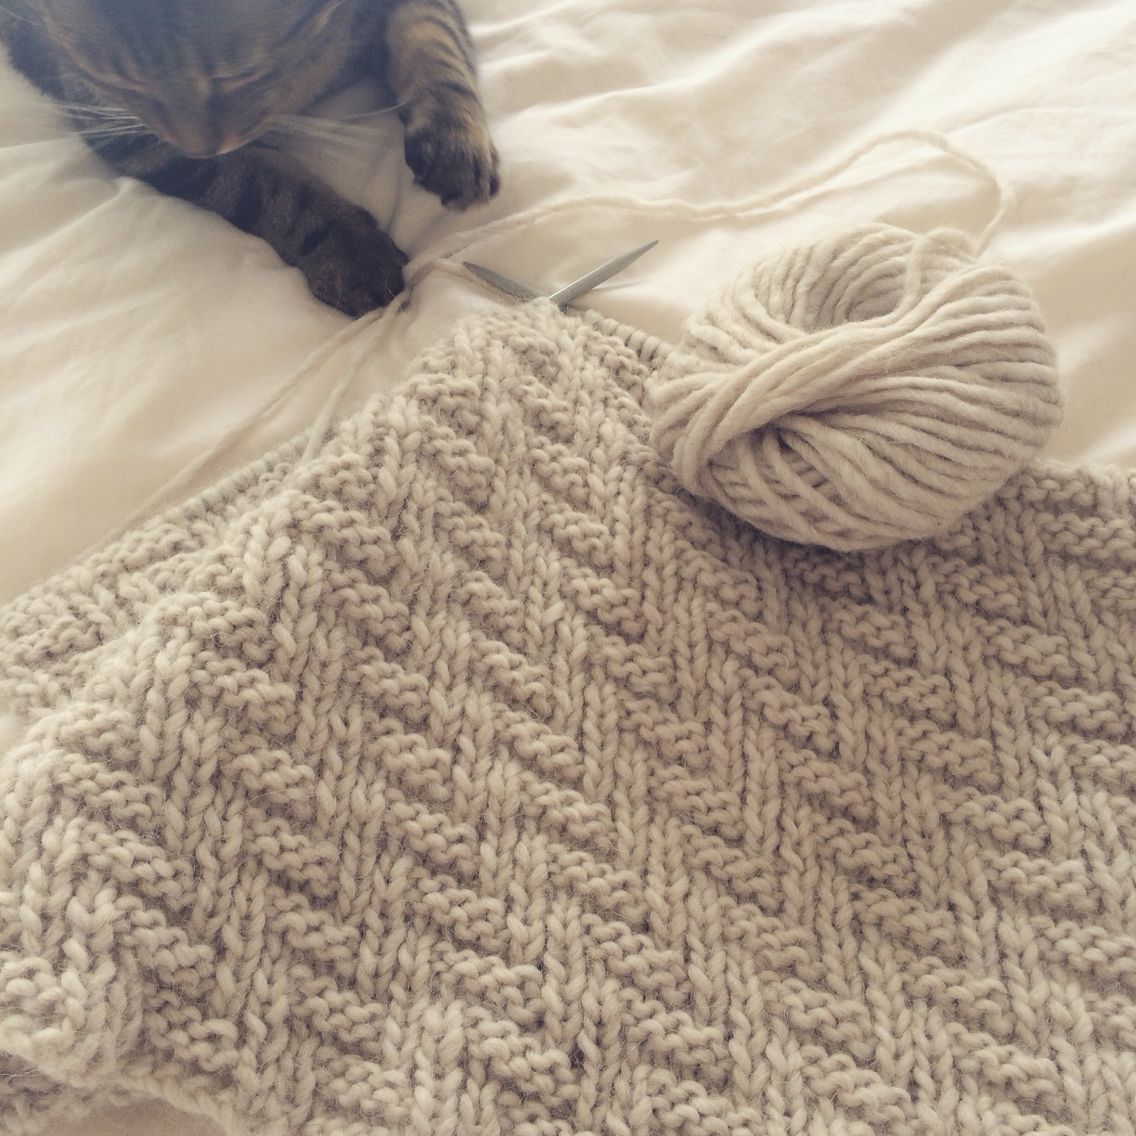 This simple knitting pattern makes a pretty herringbone or chevron this simple knitting pattern makes a pretty herringbone or chevron design with nothing fancier than knits bankloansurffo Choice Image